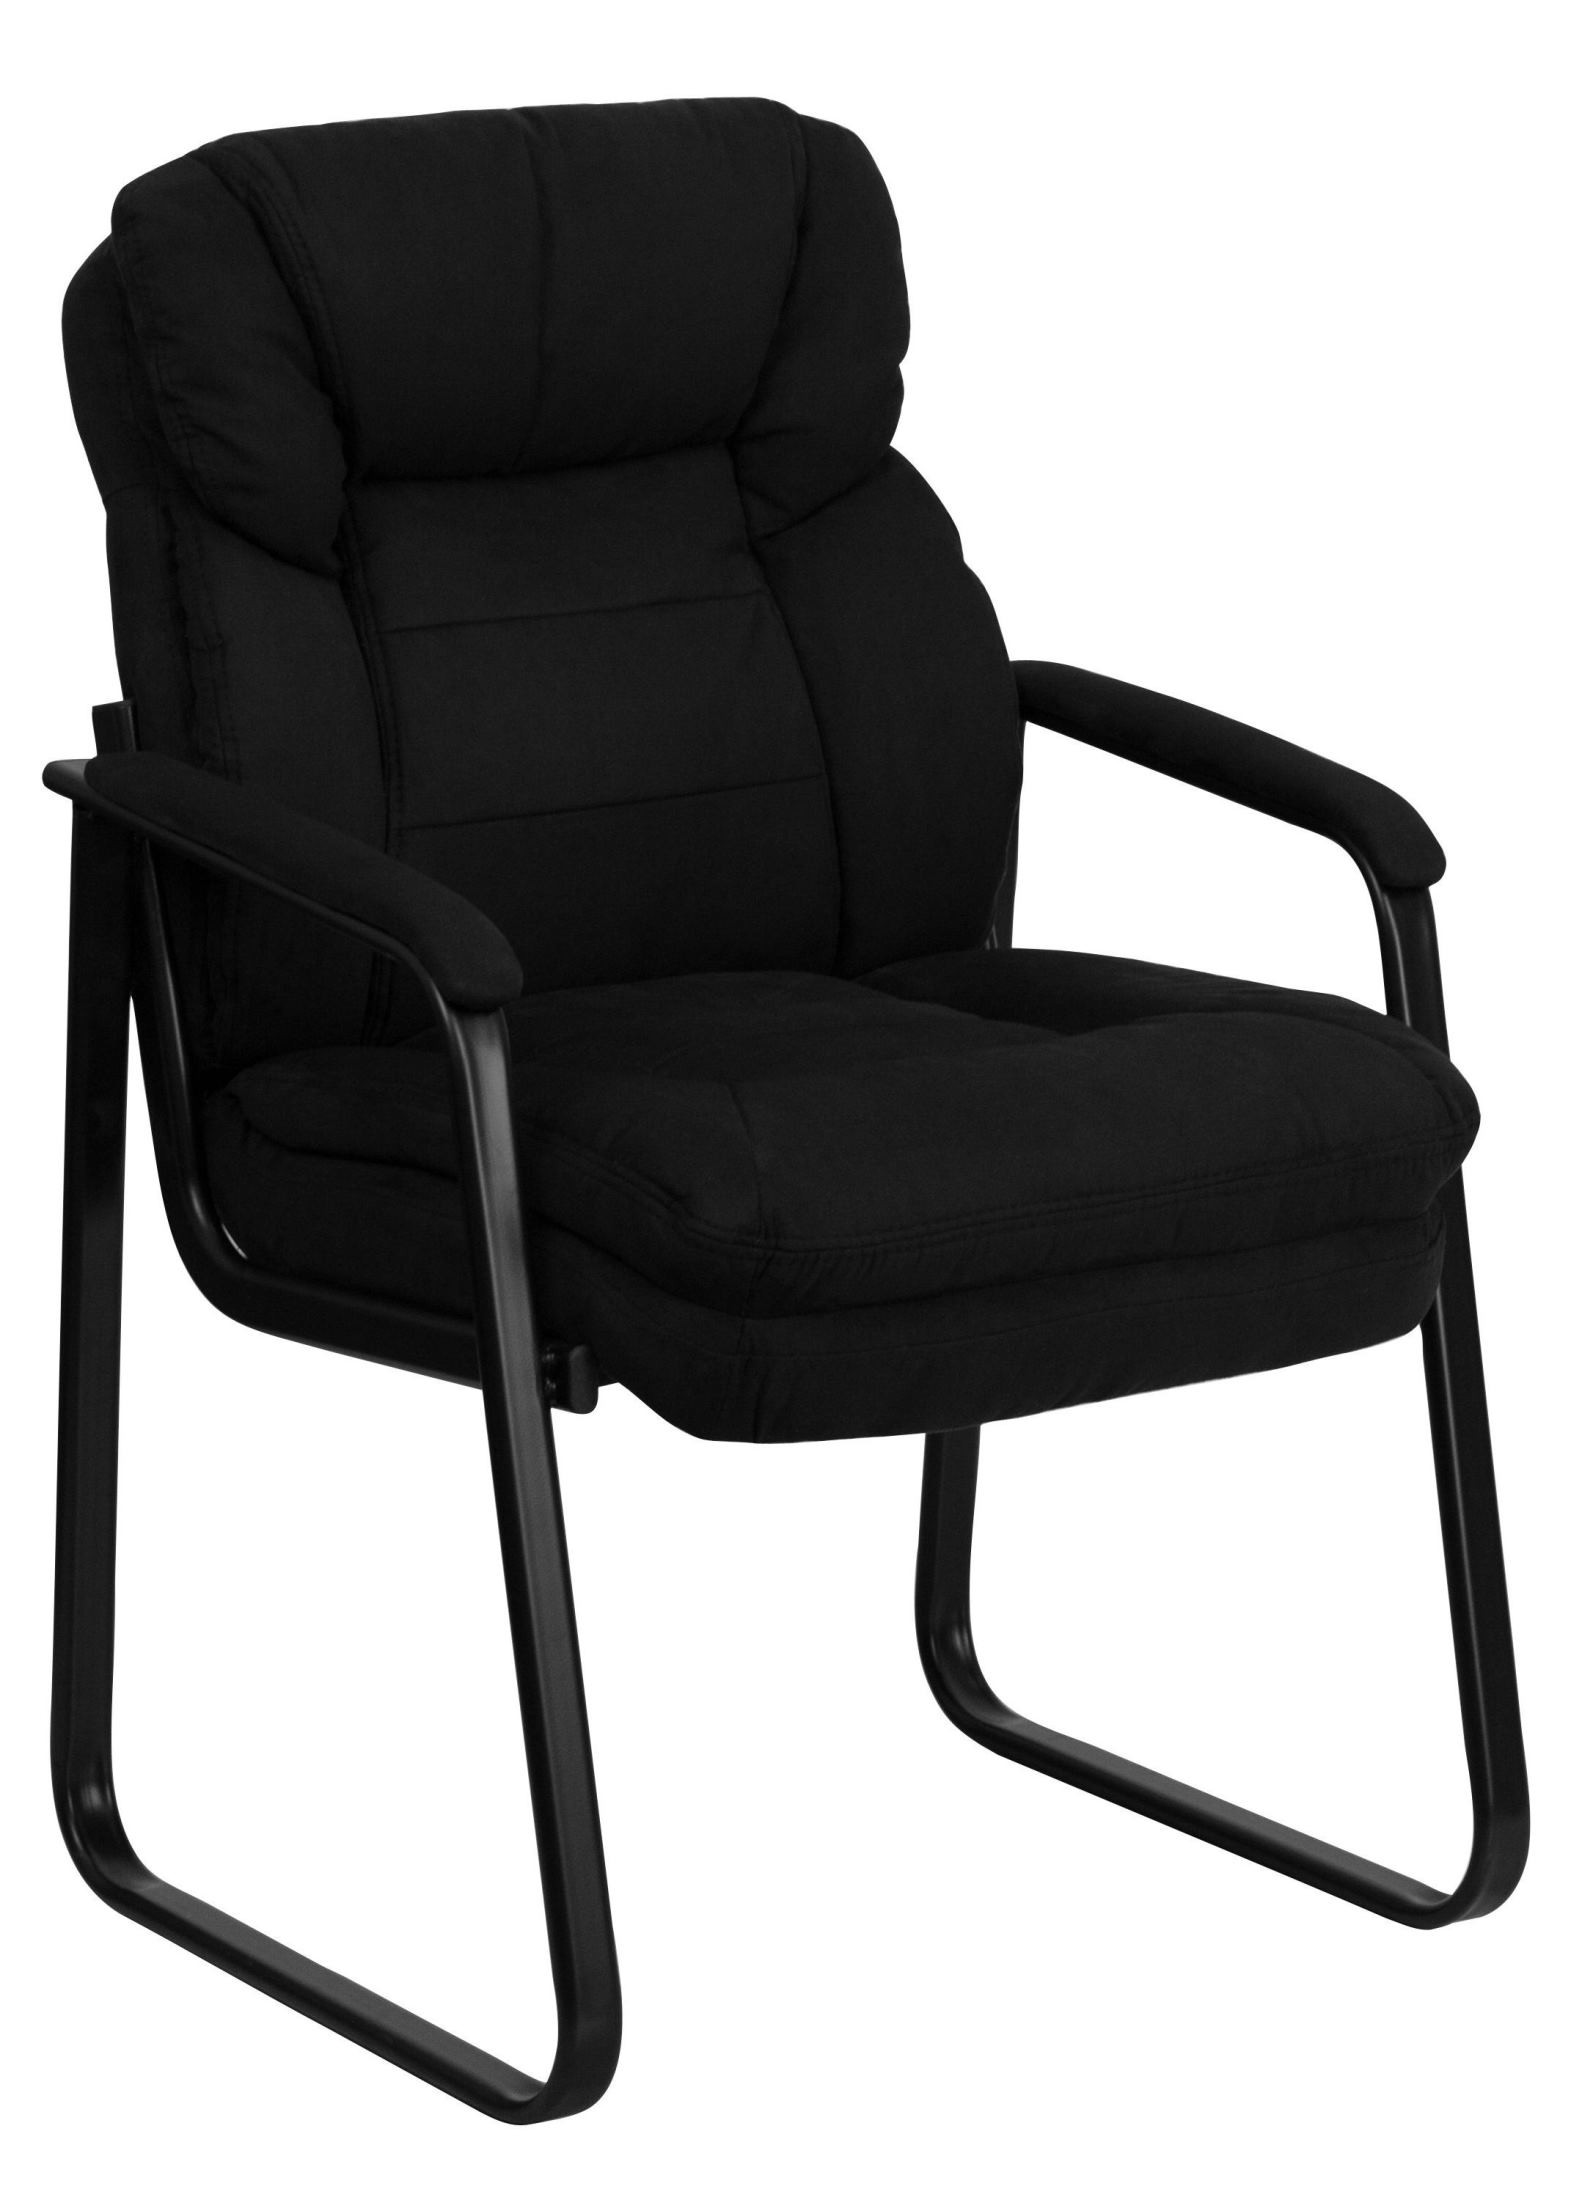 executive side chair with sled base go 1156 bk gg renegade furniture